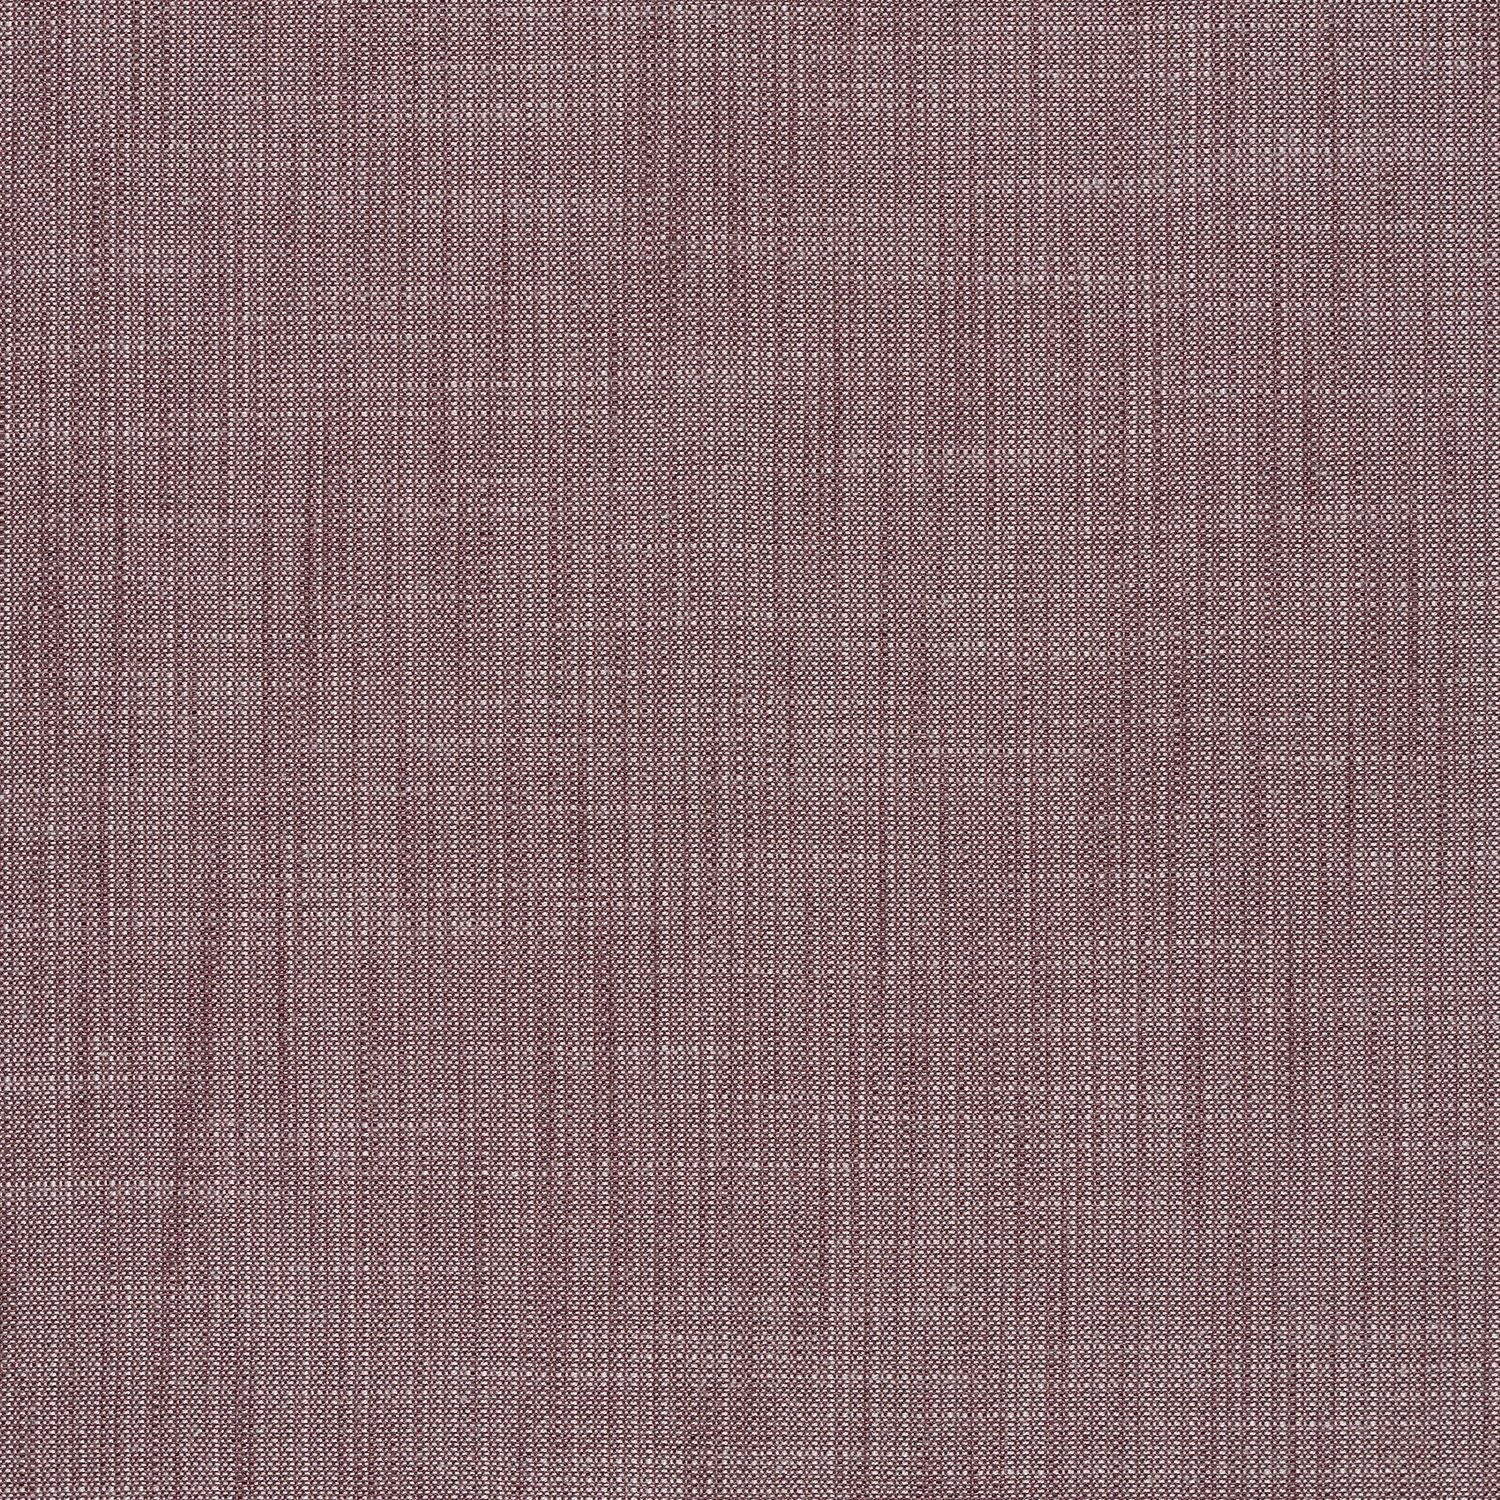 Duo Chrome - Dusty Plum - 4076 - 17